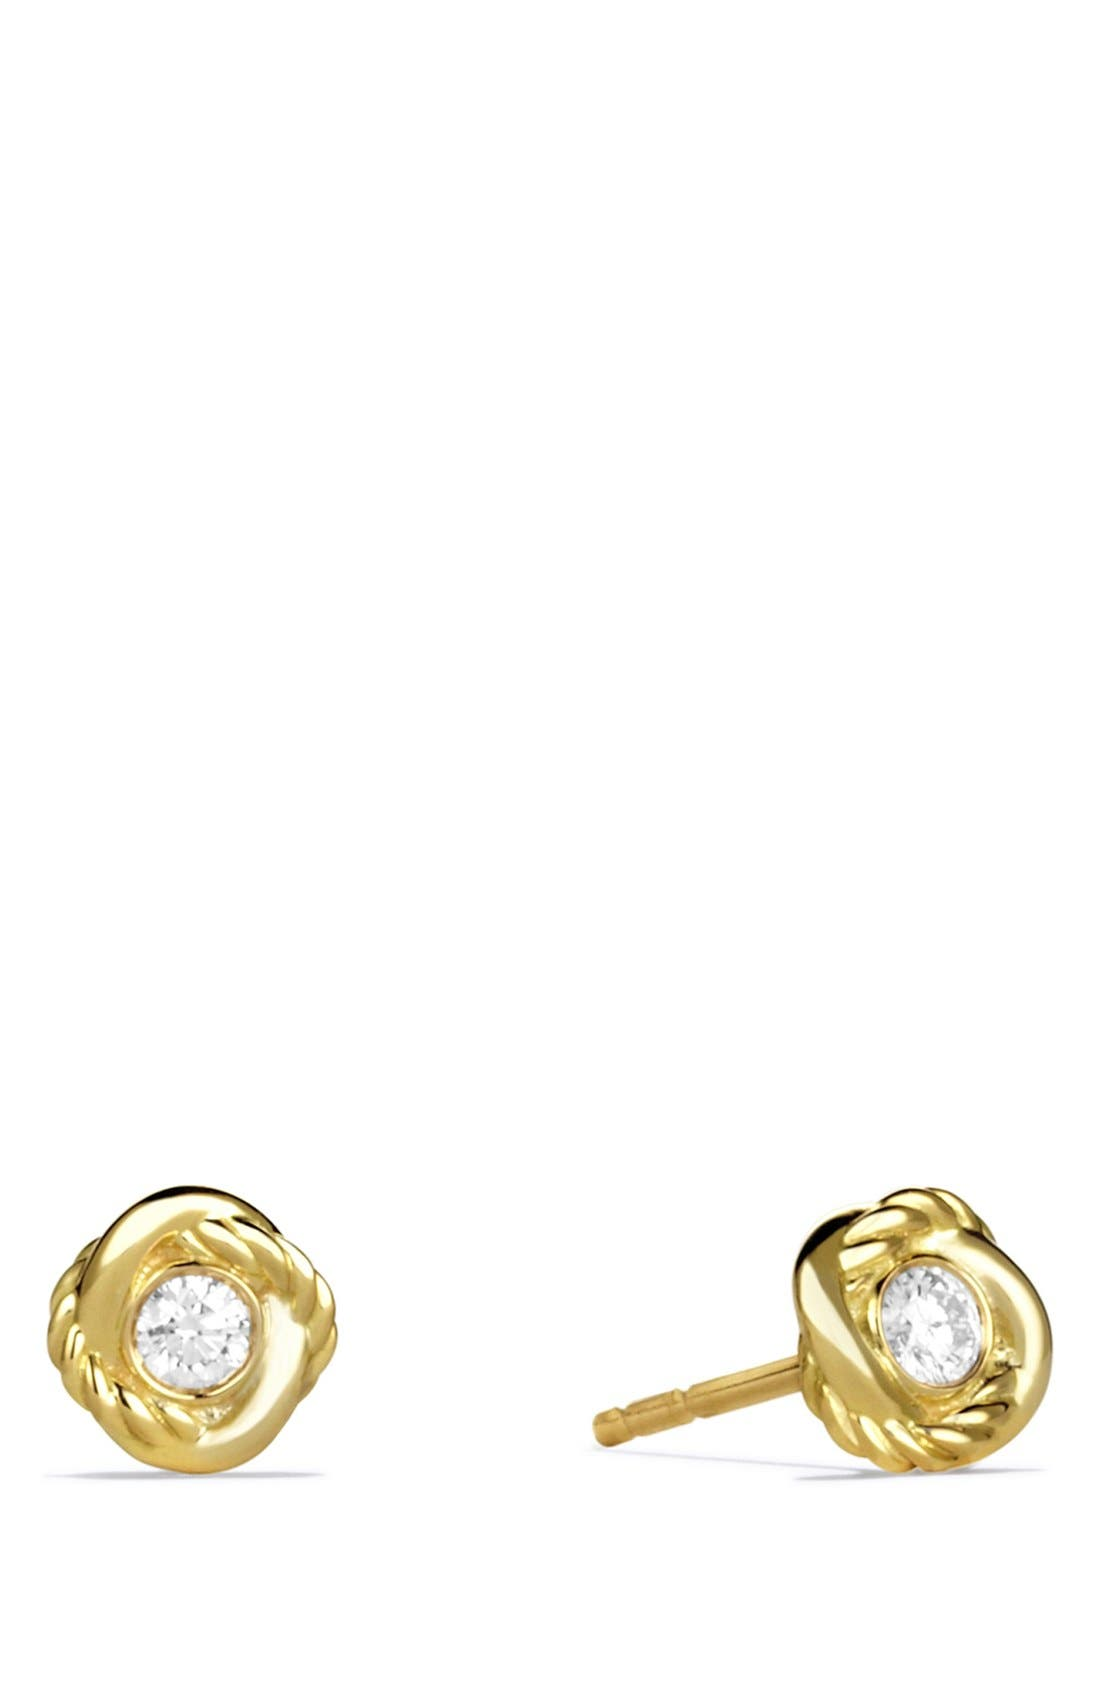 'Infinity' Earrings with Diamonds in Gold,                             Main thumbnail 1, color,                             DIAMOND